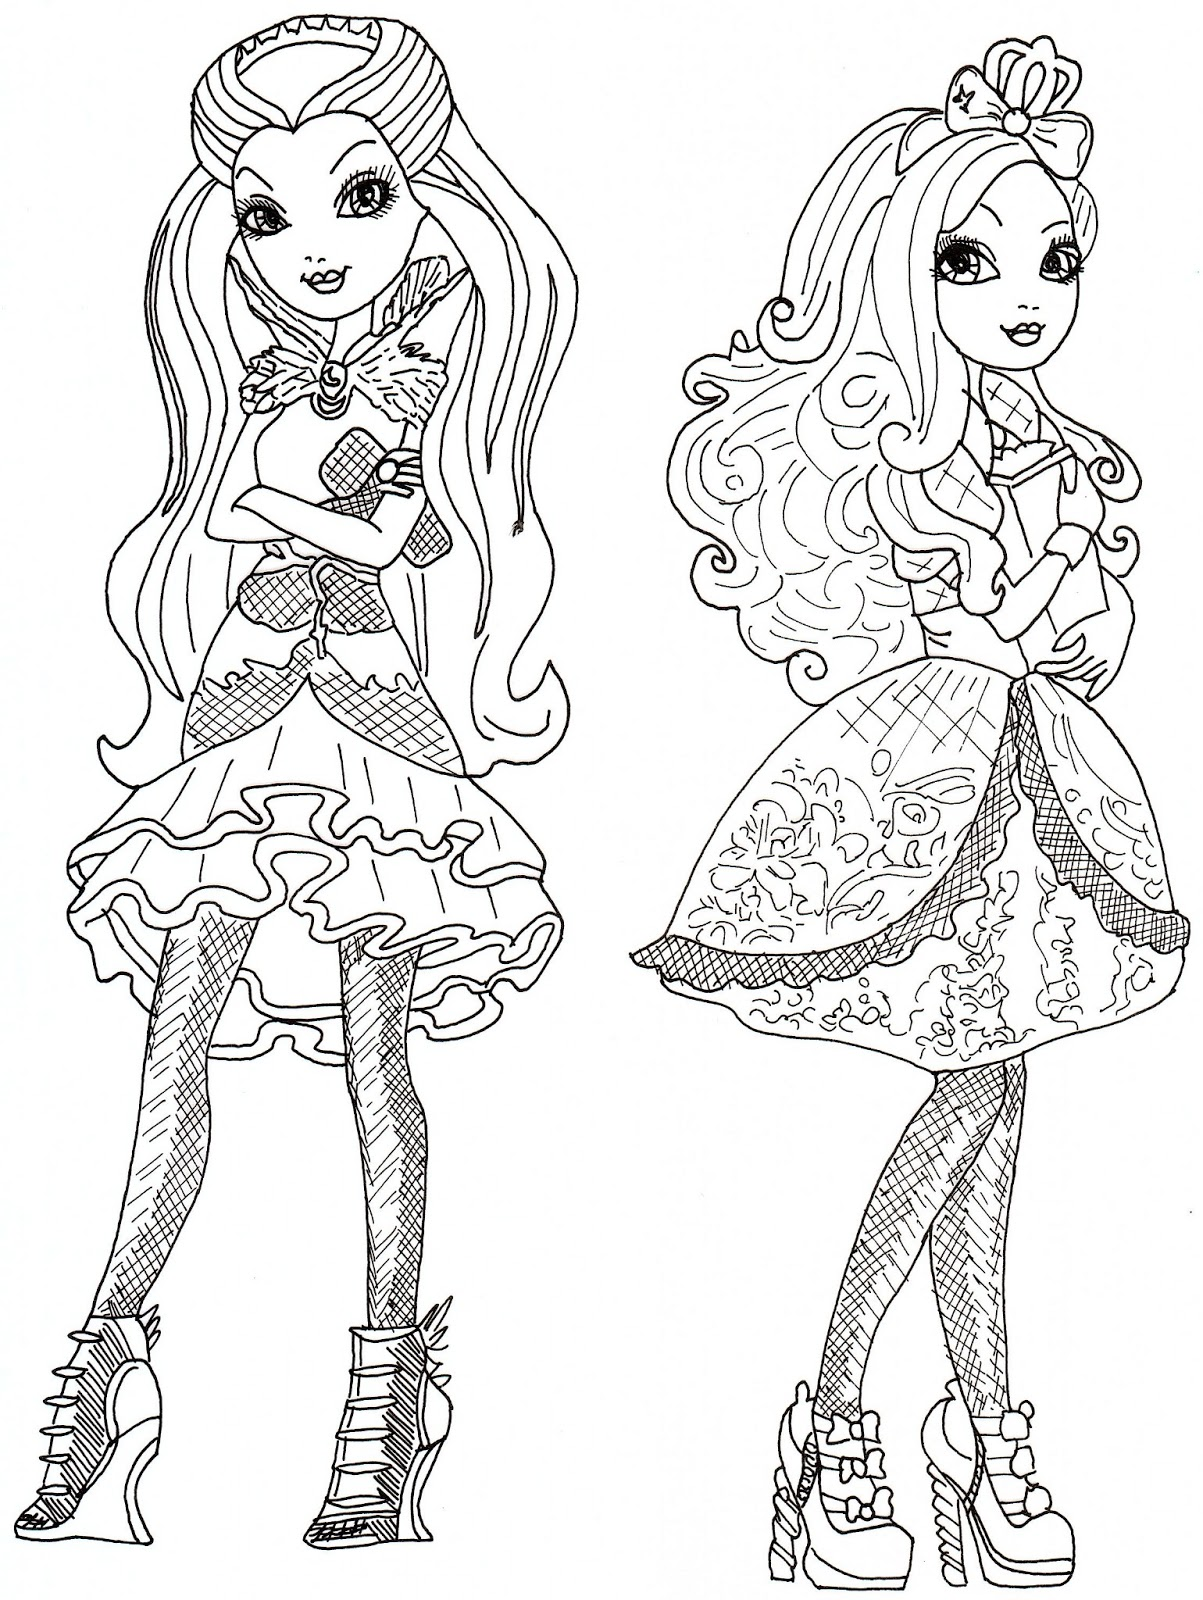 Free Printable Ever After High Coloring Pages June 2013 High Color Page 2